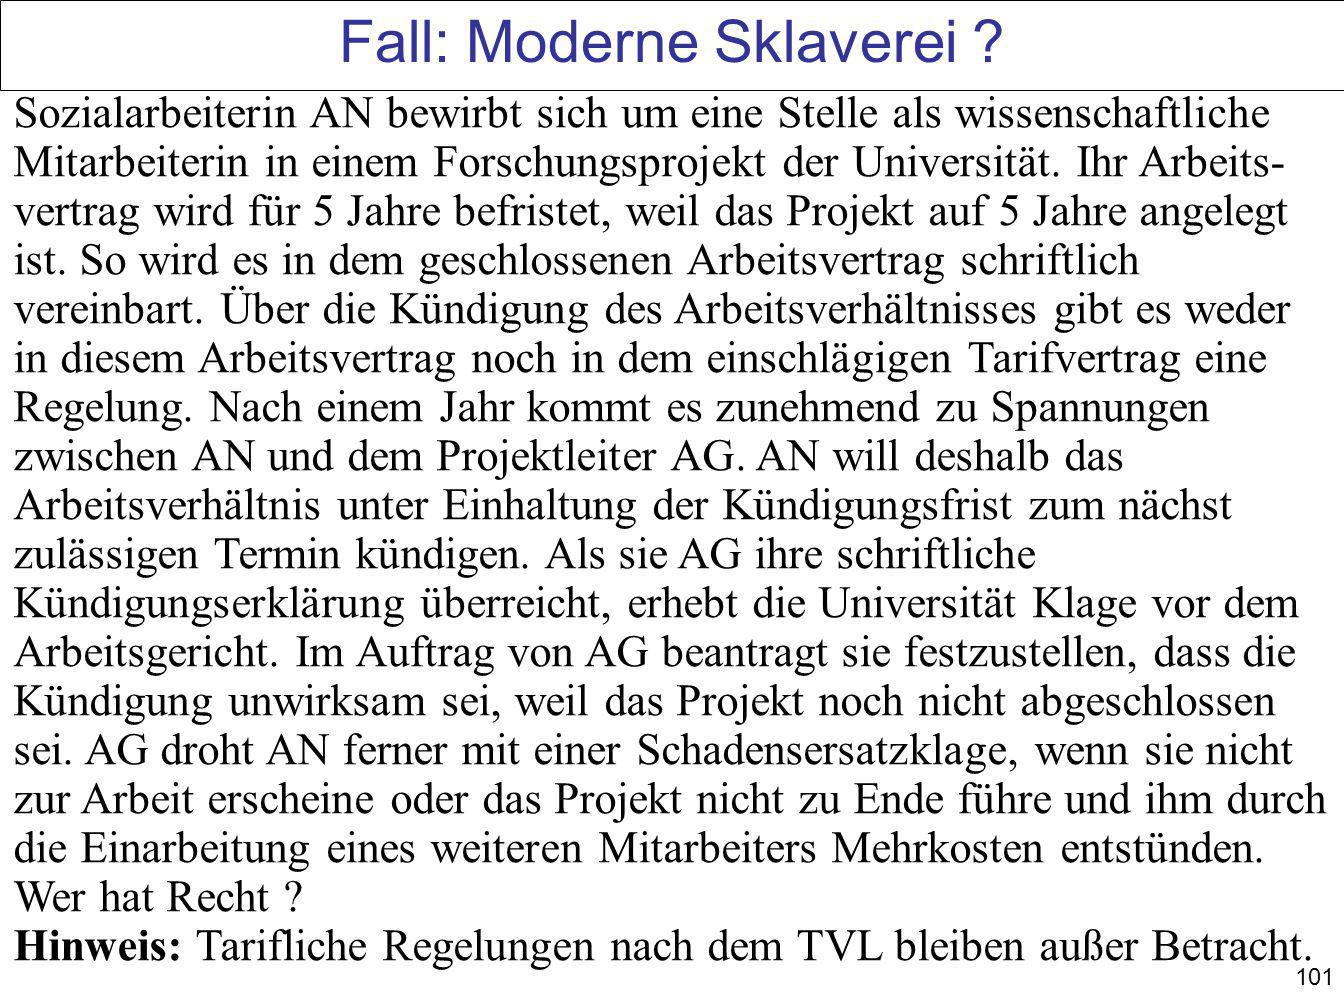 Fall: Moderne Sklaverei